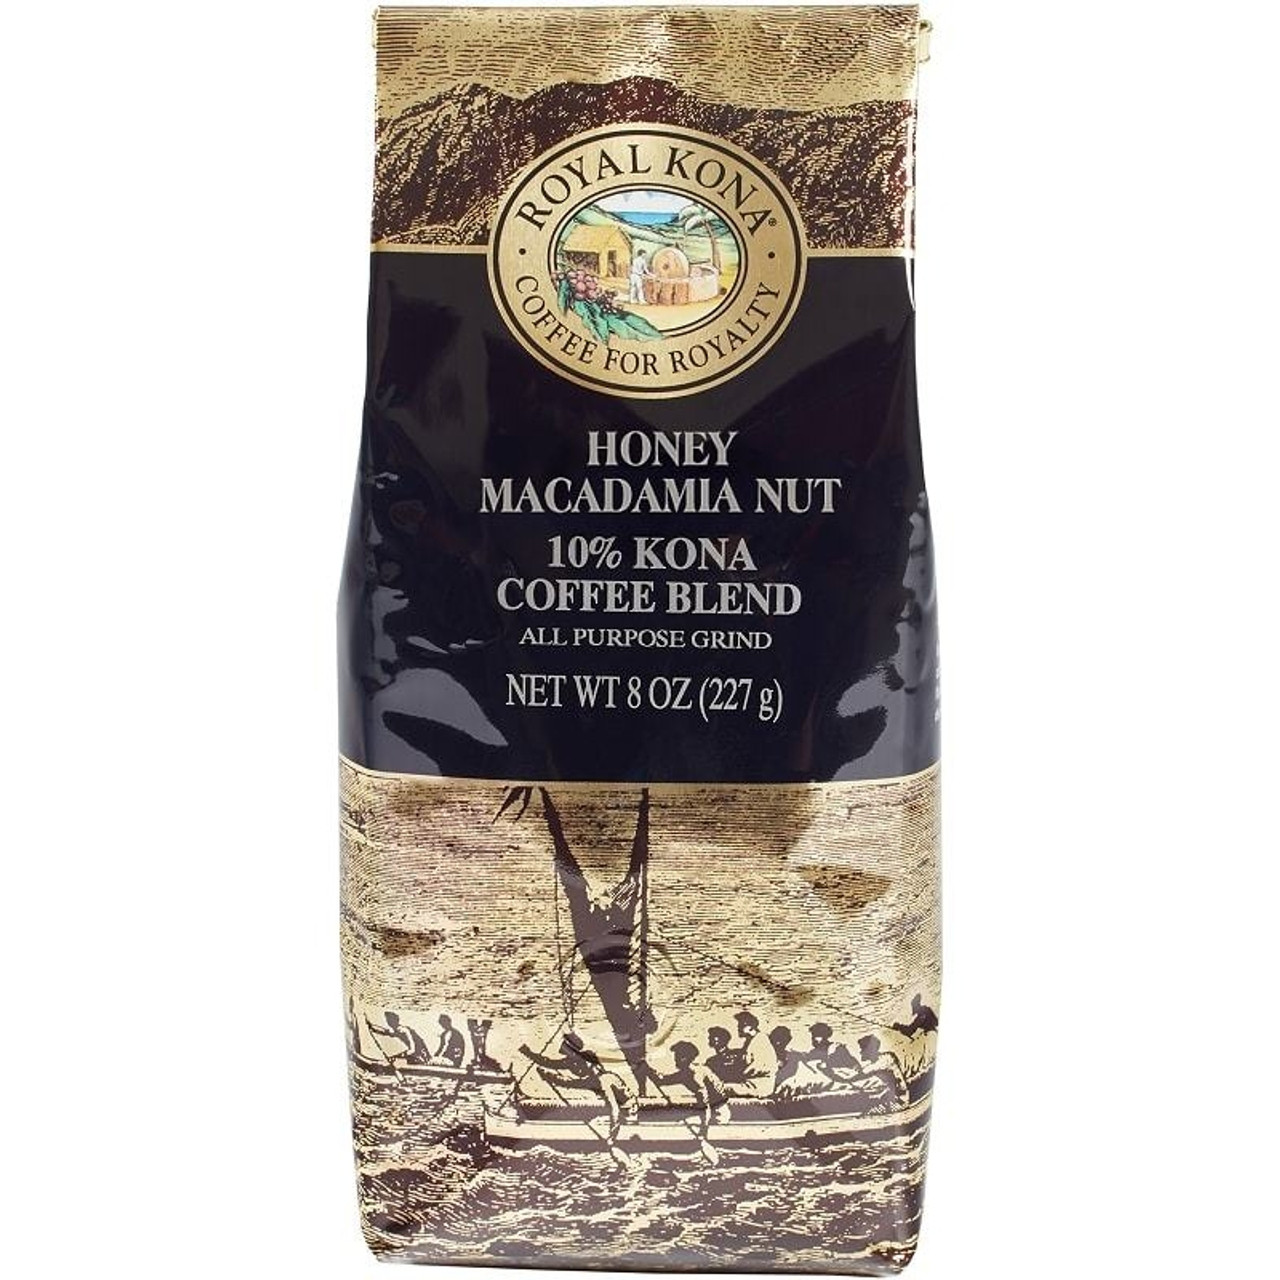 Royal Kona Honey Macadamia